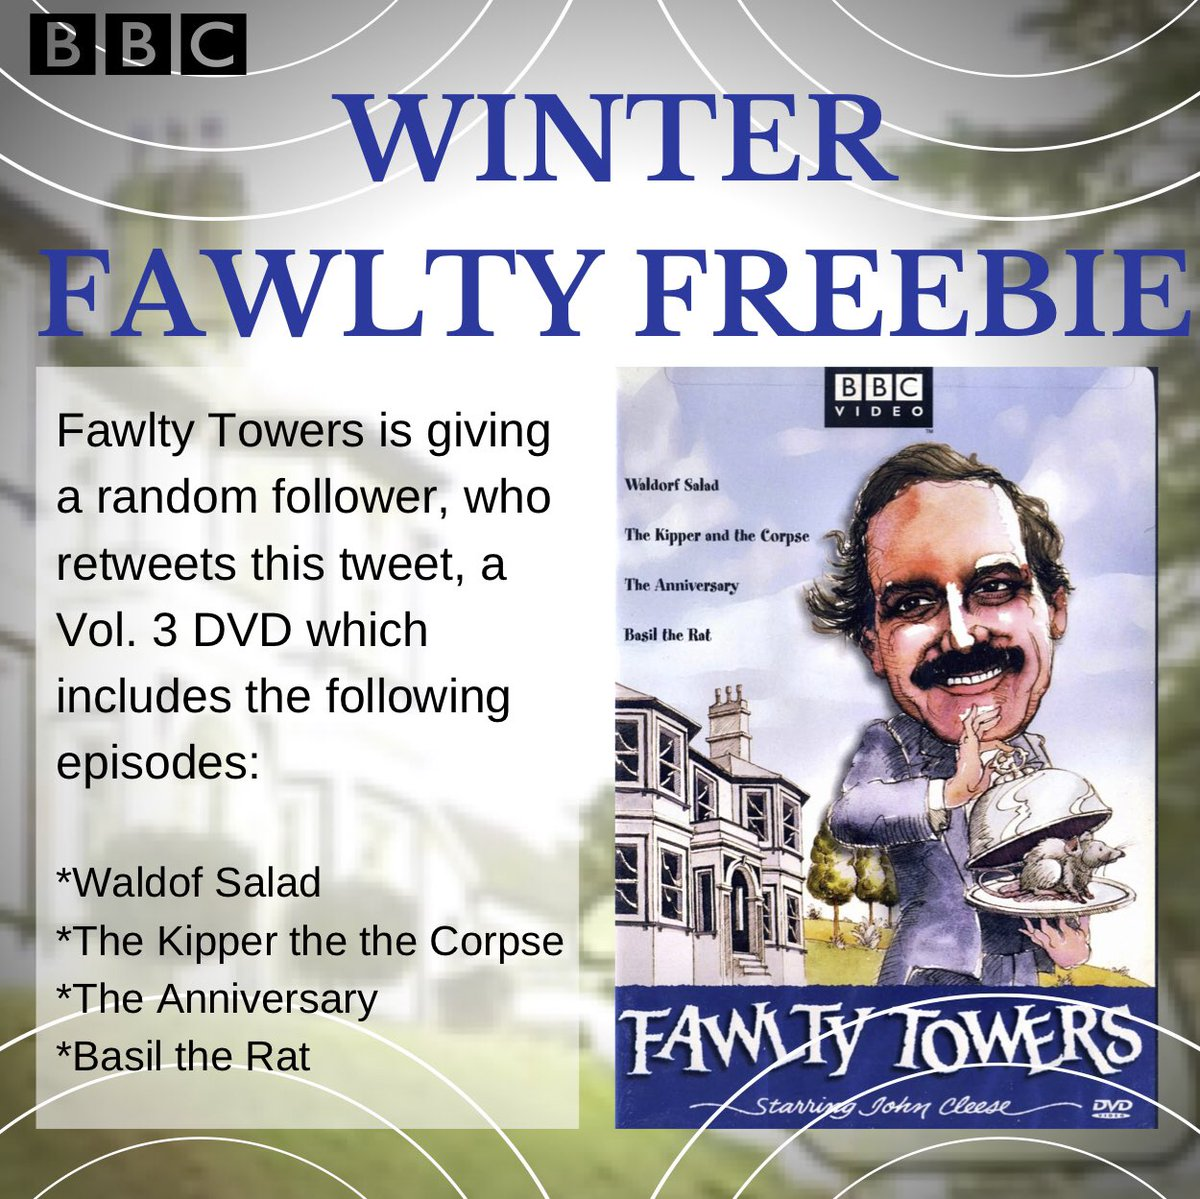 Fawlty Towers is giving a random follower, who retweets this tweet, a Vol. 3 DVD.  Winner to be revealed on Monday.  Follow and retweet! #FawltyFreebie  🇬🇧